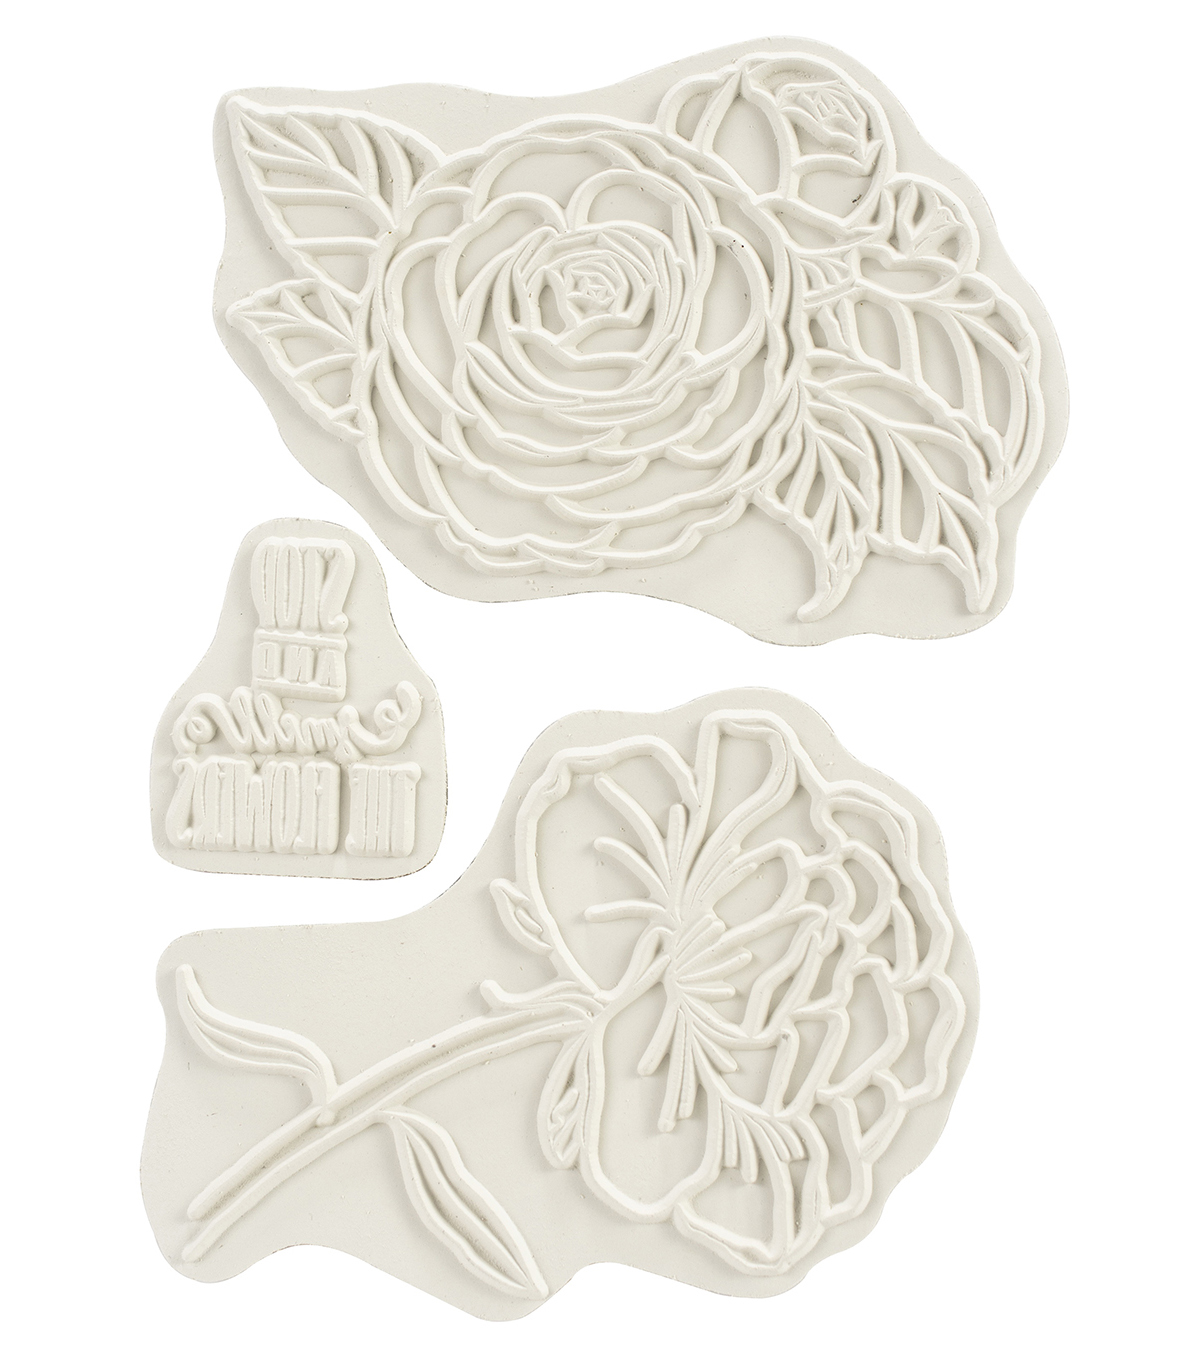 Carabelle Studio Cling Stamp A6 By Sultane-Stop & Smell The Flowers